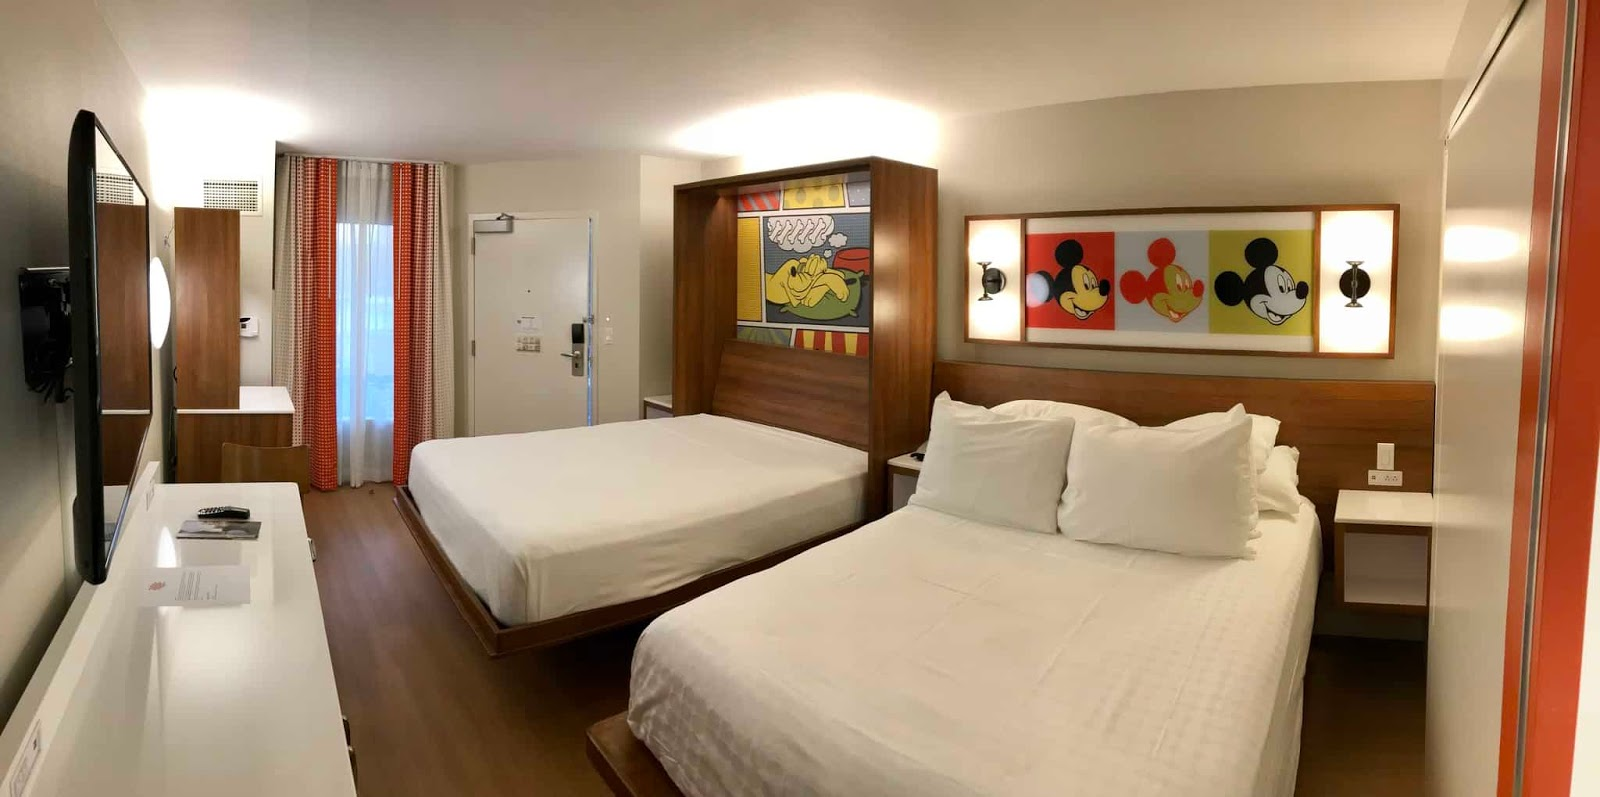 Quartos reformados do Disney's Pop Century Resorts